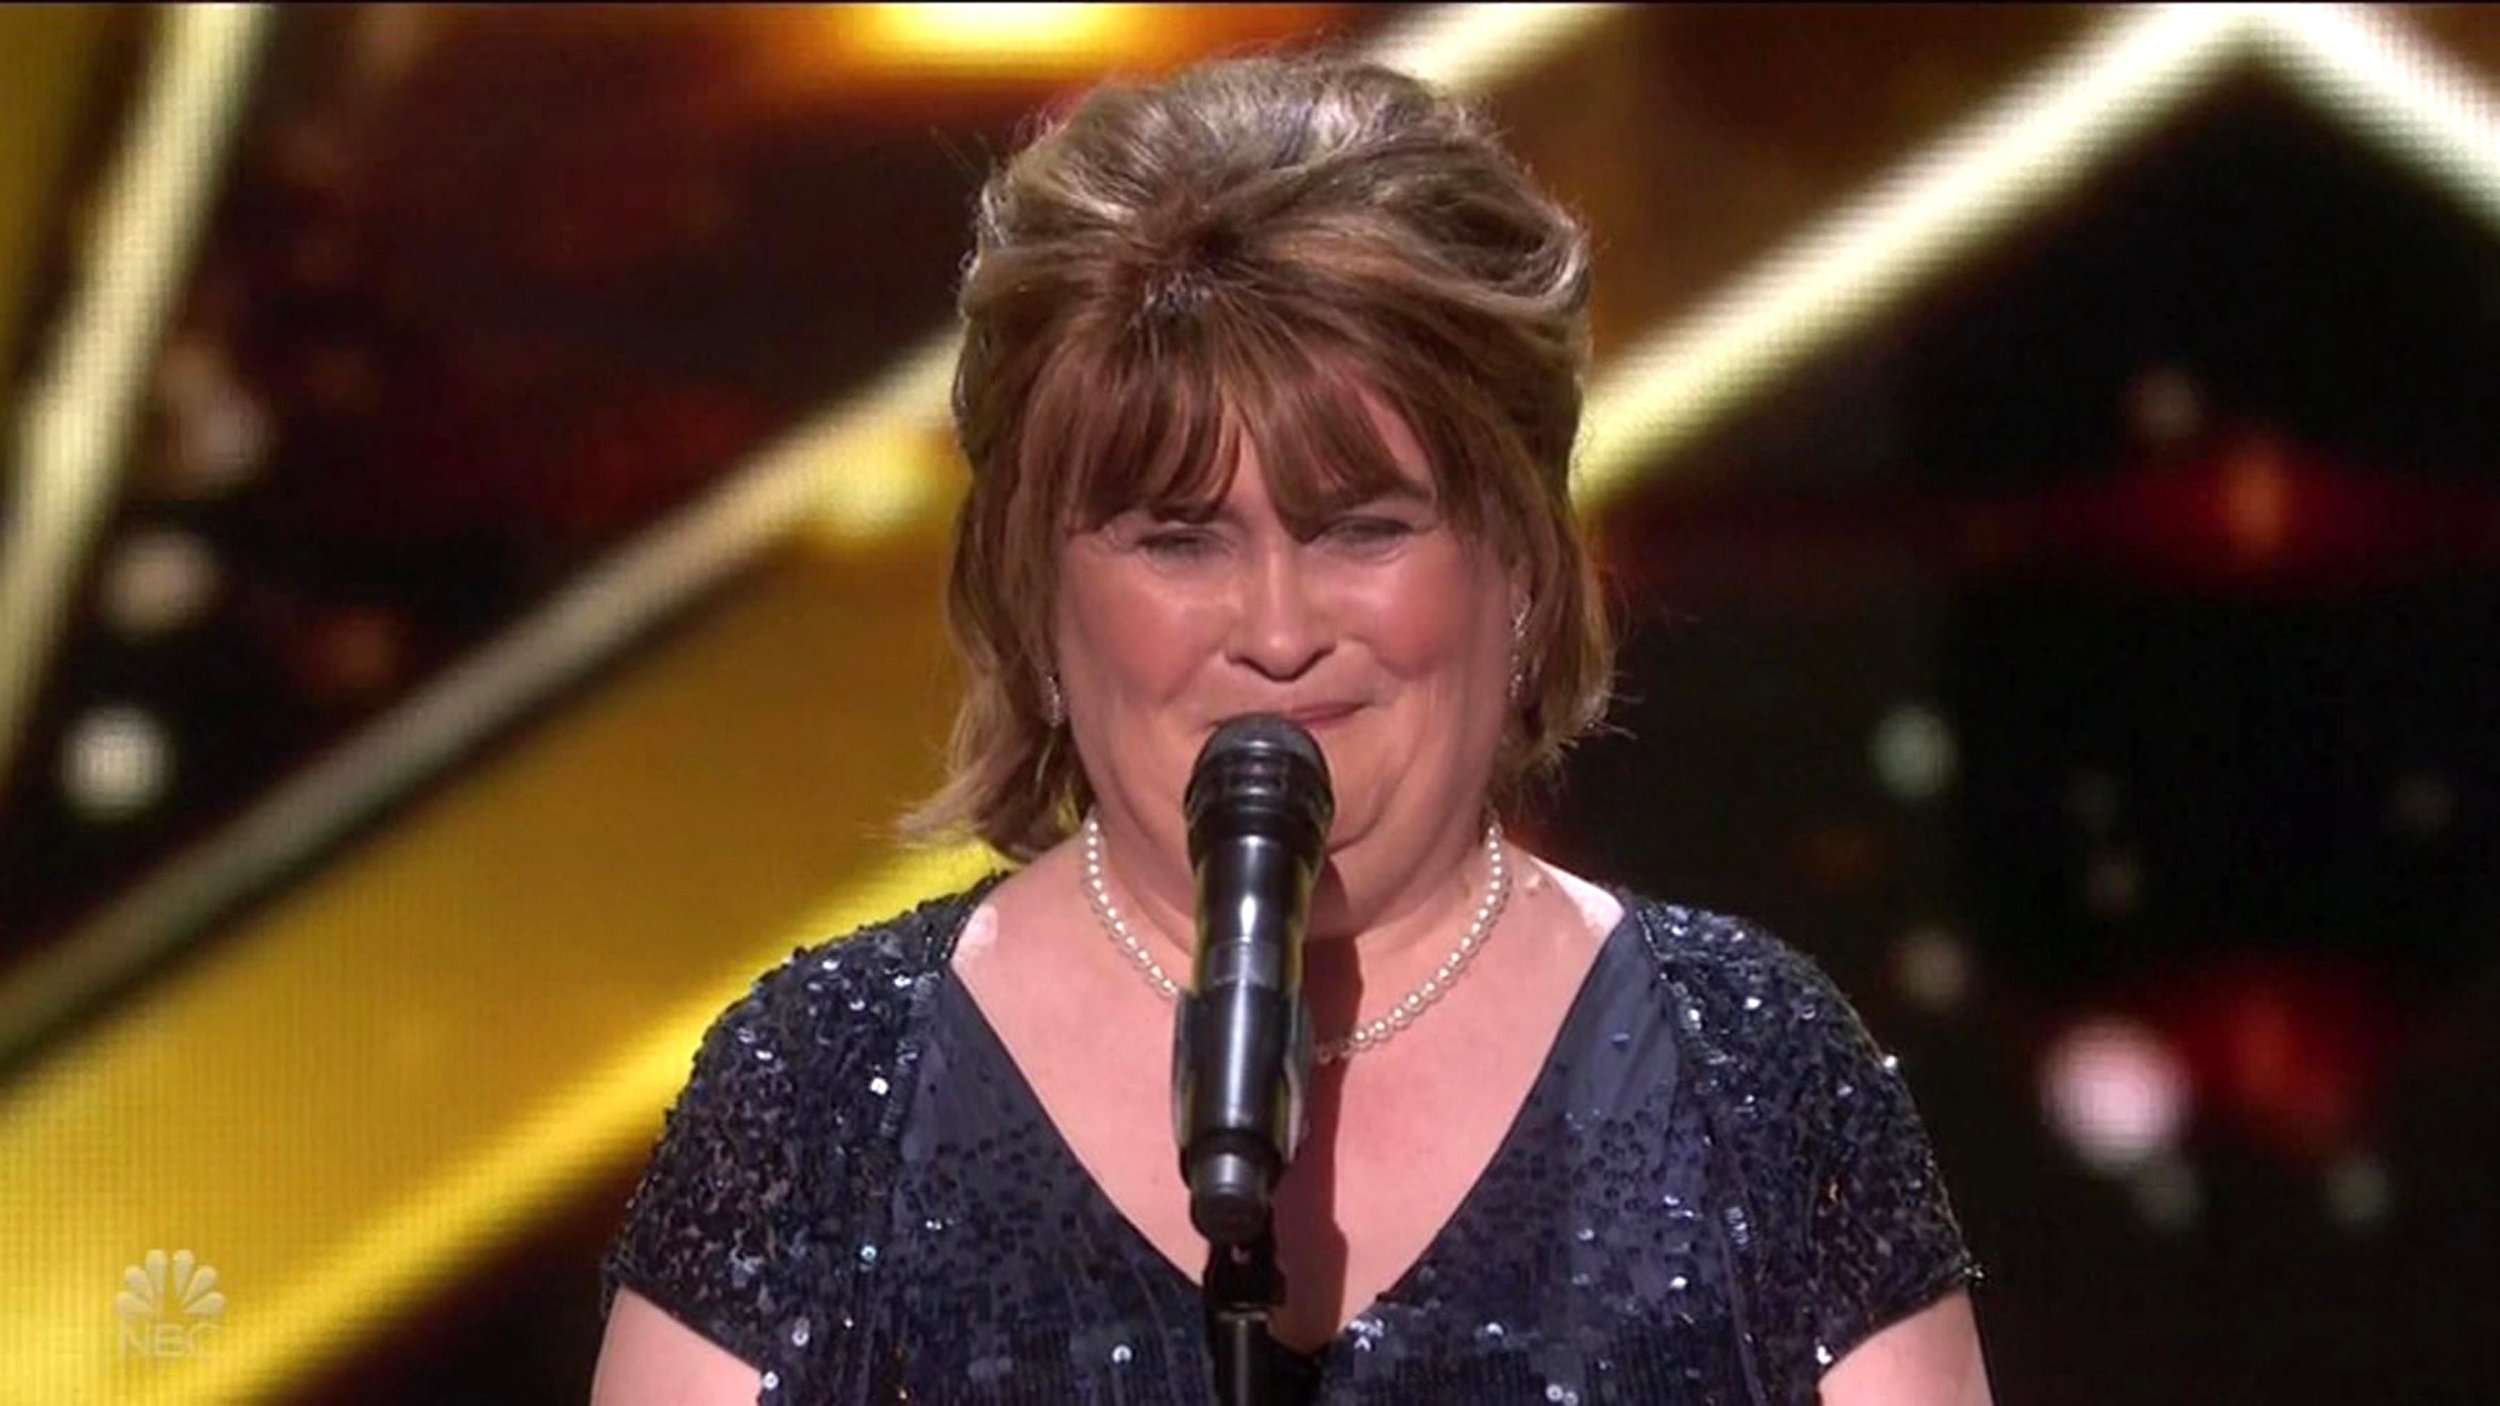 Susan Boyle was in 'panic' after losing Britain's Got Talent to Diversity